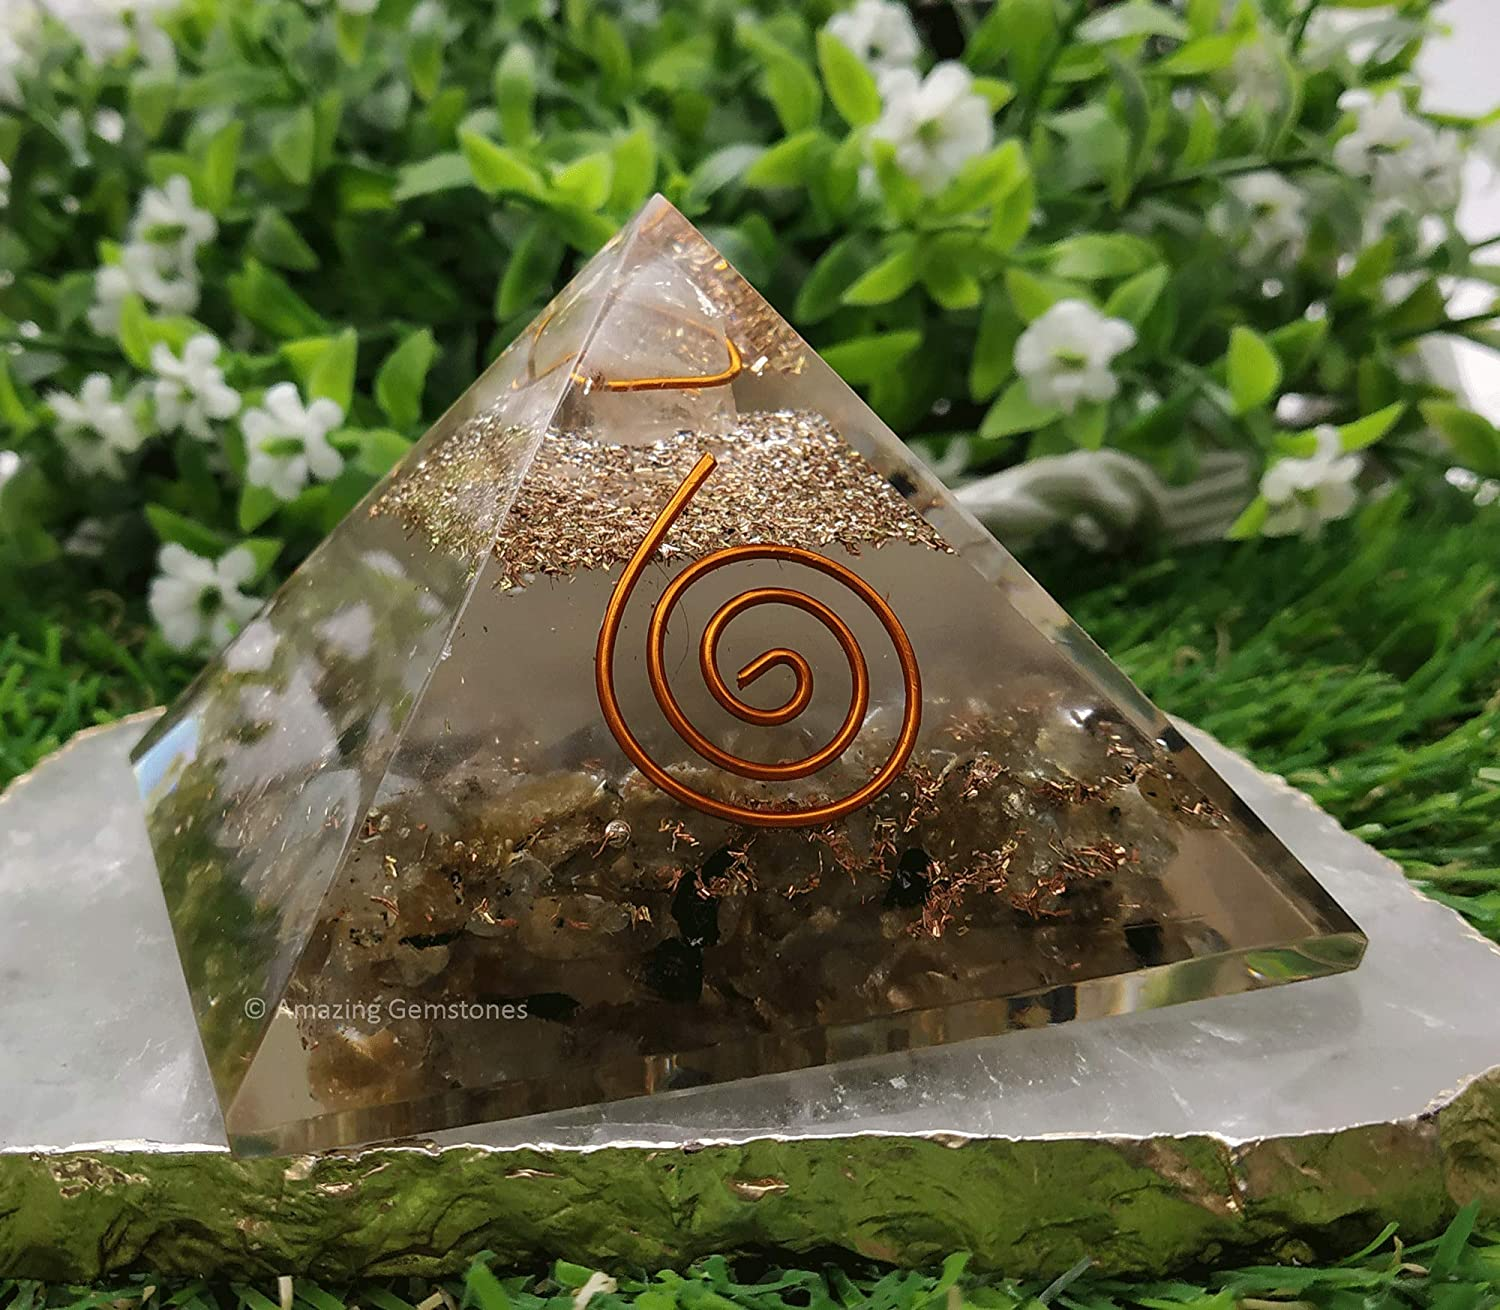 Amazing Gemstone Labradorite Glow in The Dark Orgone Pyramid/Orgonite Pyramid for EMF Protection, Negative Energy Protection and Home Office Decor